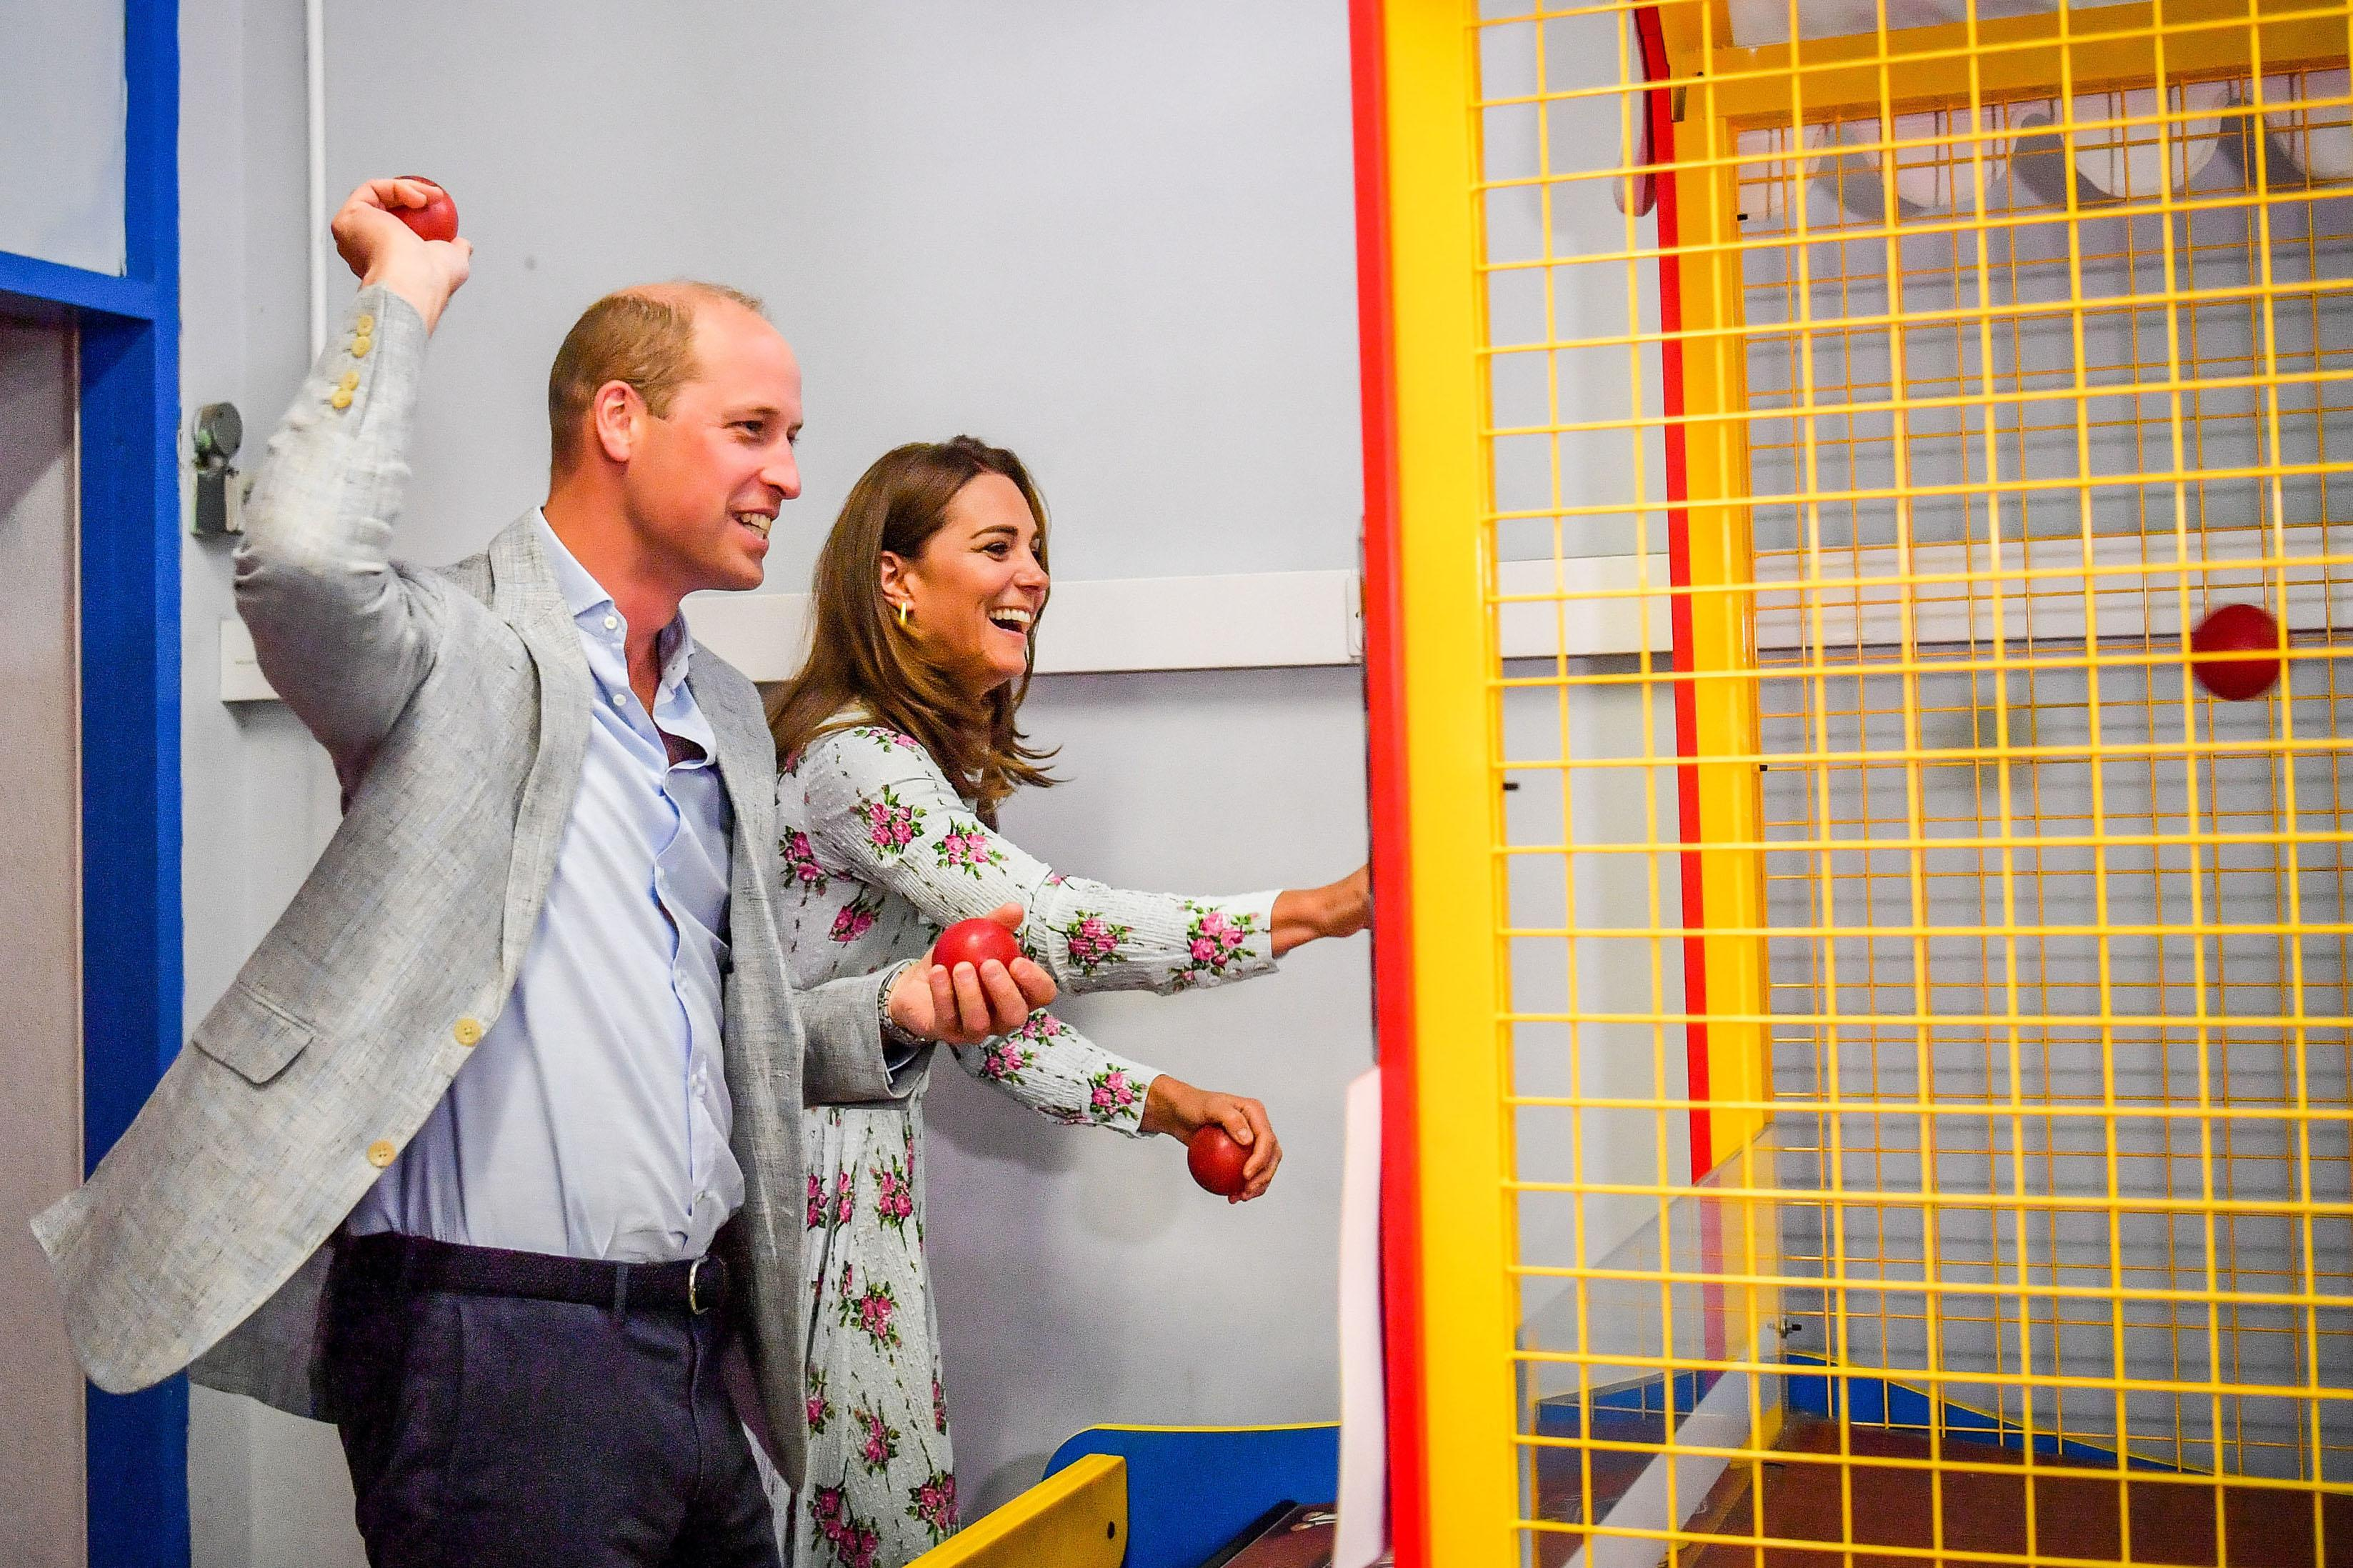 Kate Middleton and Prince William Went to an Arcade and Had a Ball ...